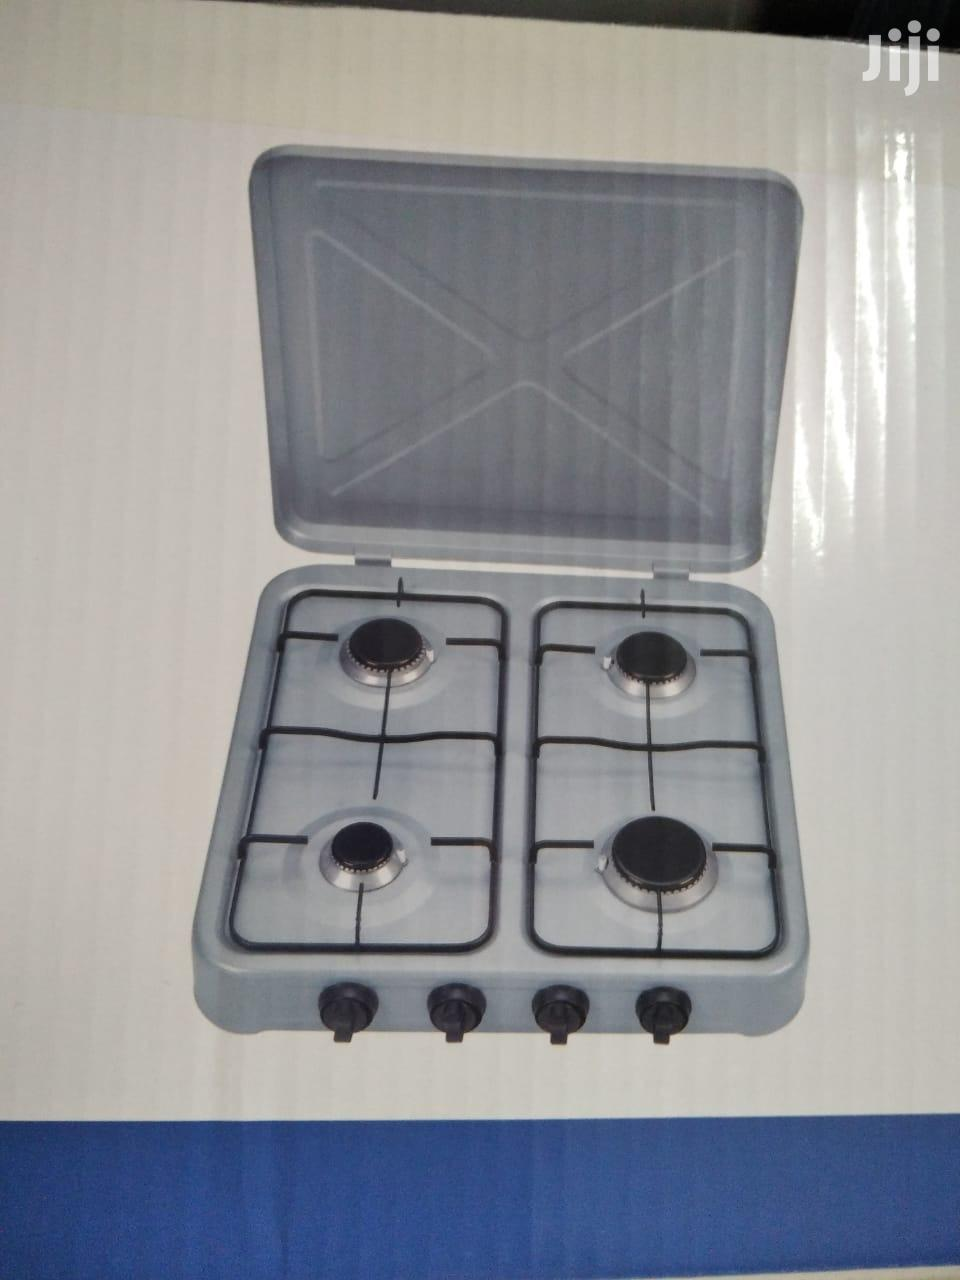 Table Top 4 Burner Gas Cooker